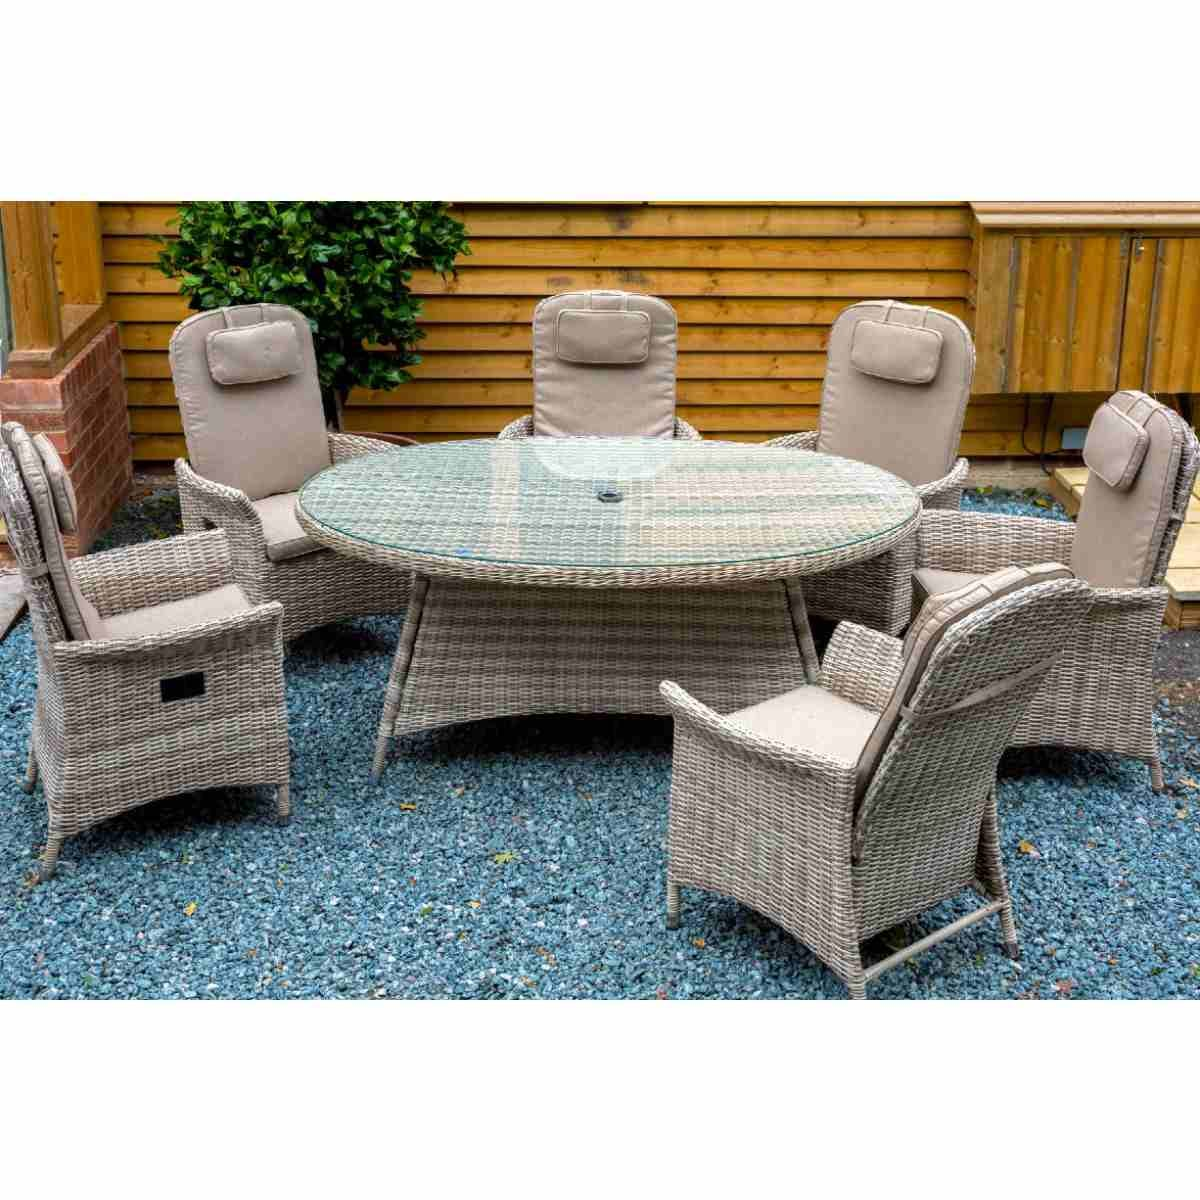 Katie Blake Flamingo 6 Reclining Chair Dining Set with 1.2m x 1.75m Oval Table Parasol & Base - Natural / Taupe